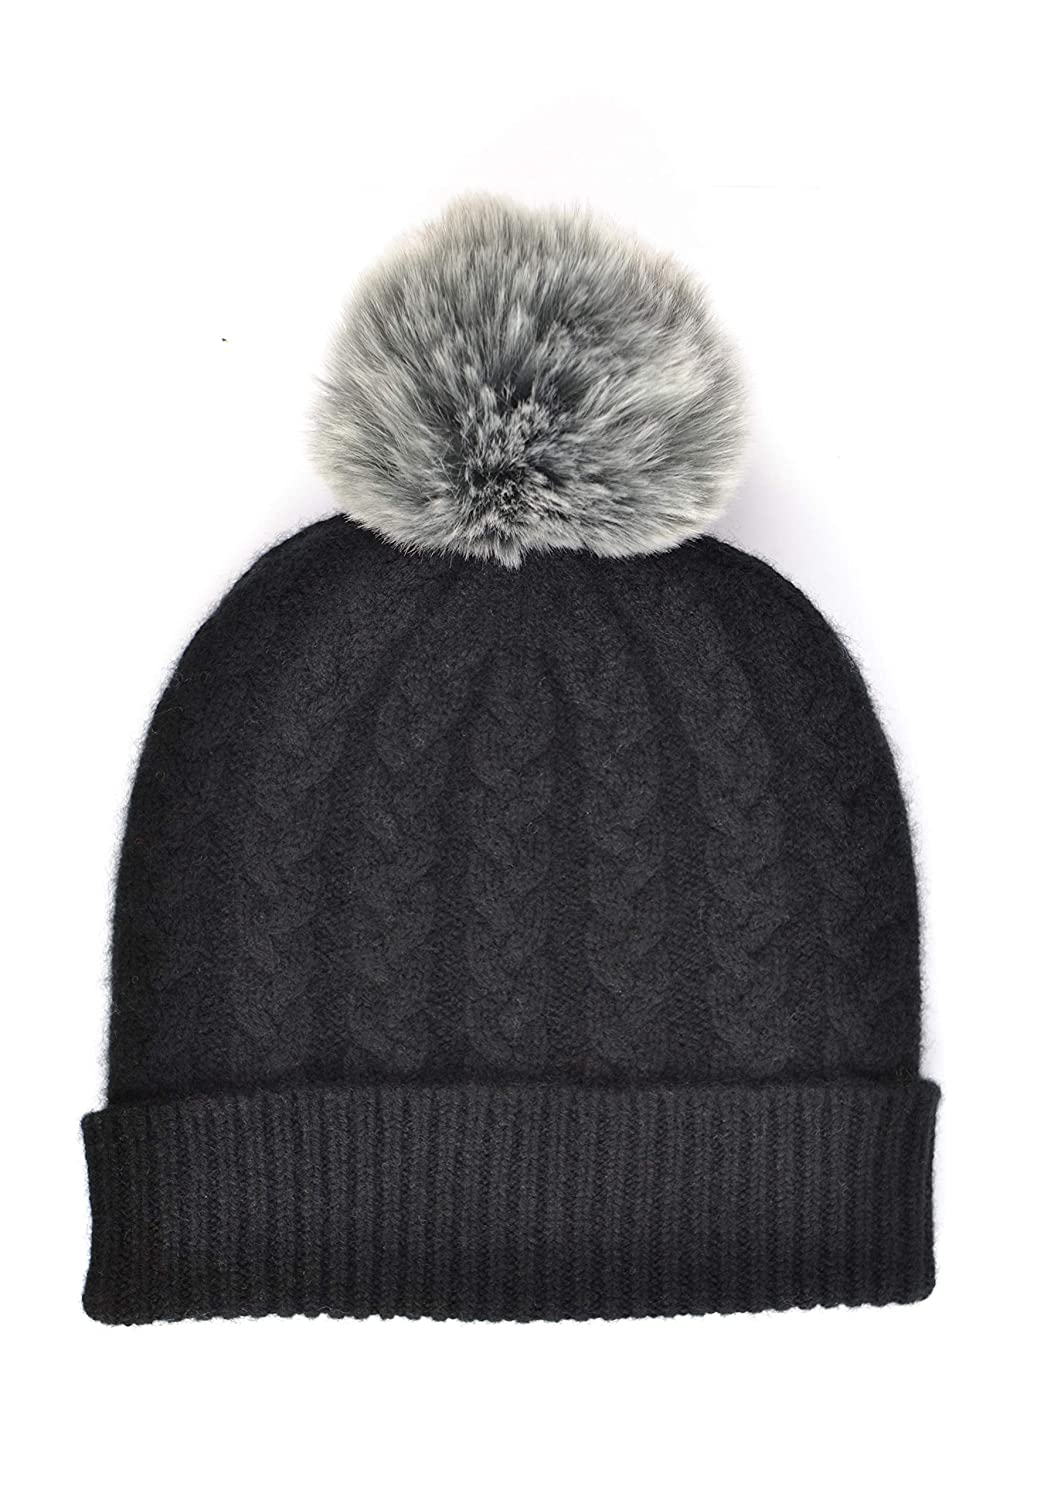 William Lockie Ladies Cashmere Cable Hat in Black with Grey Faux Fur Pom Pom Made in Scotland